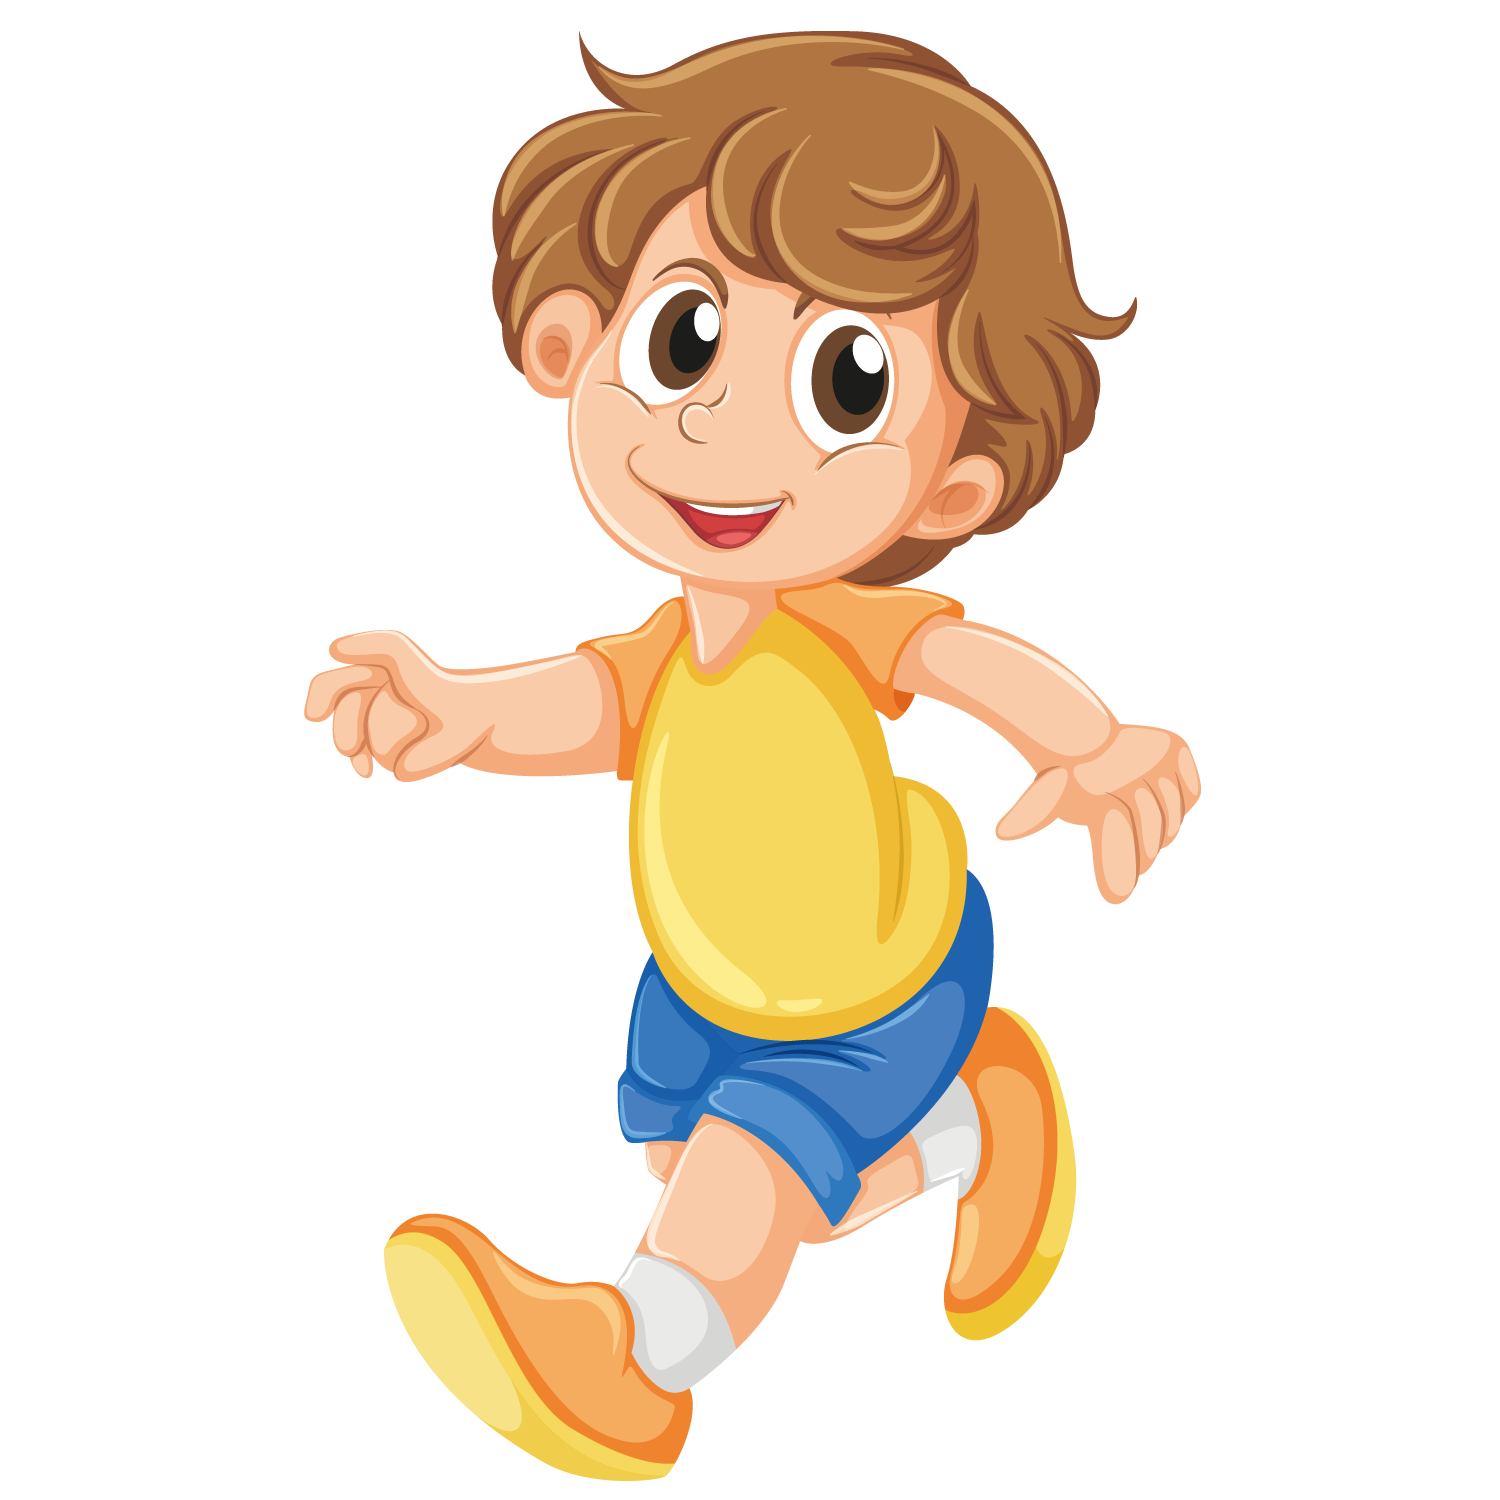 Download High Quality walk clipart baby boy Transparent PNG.